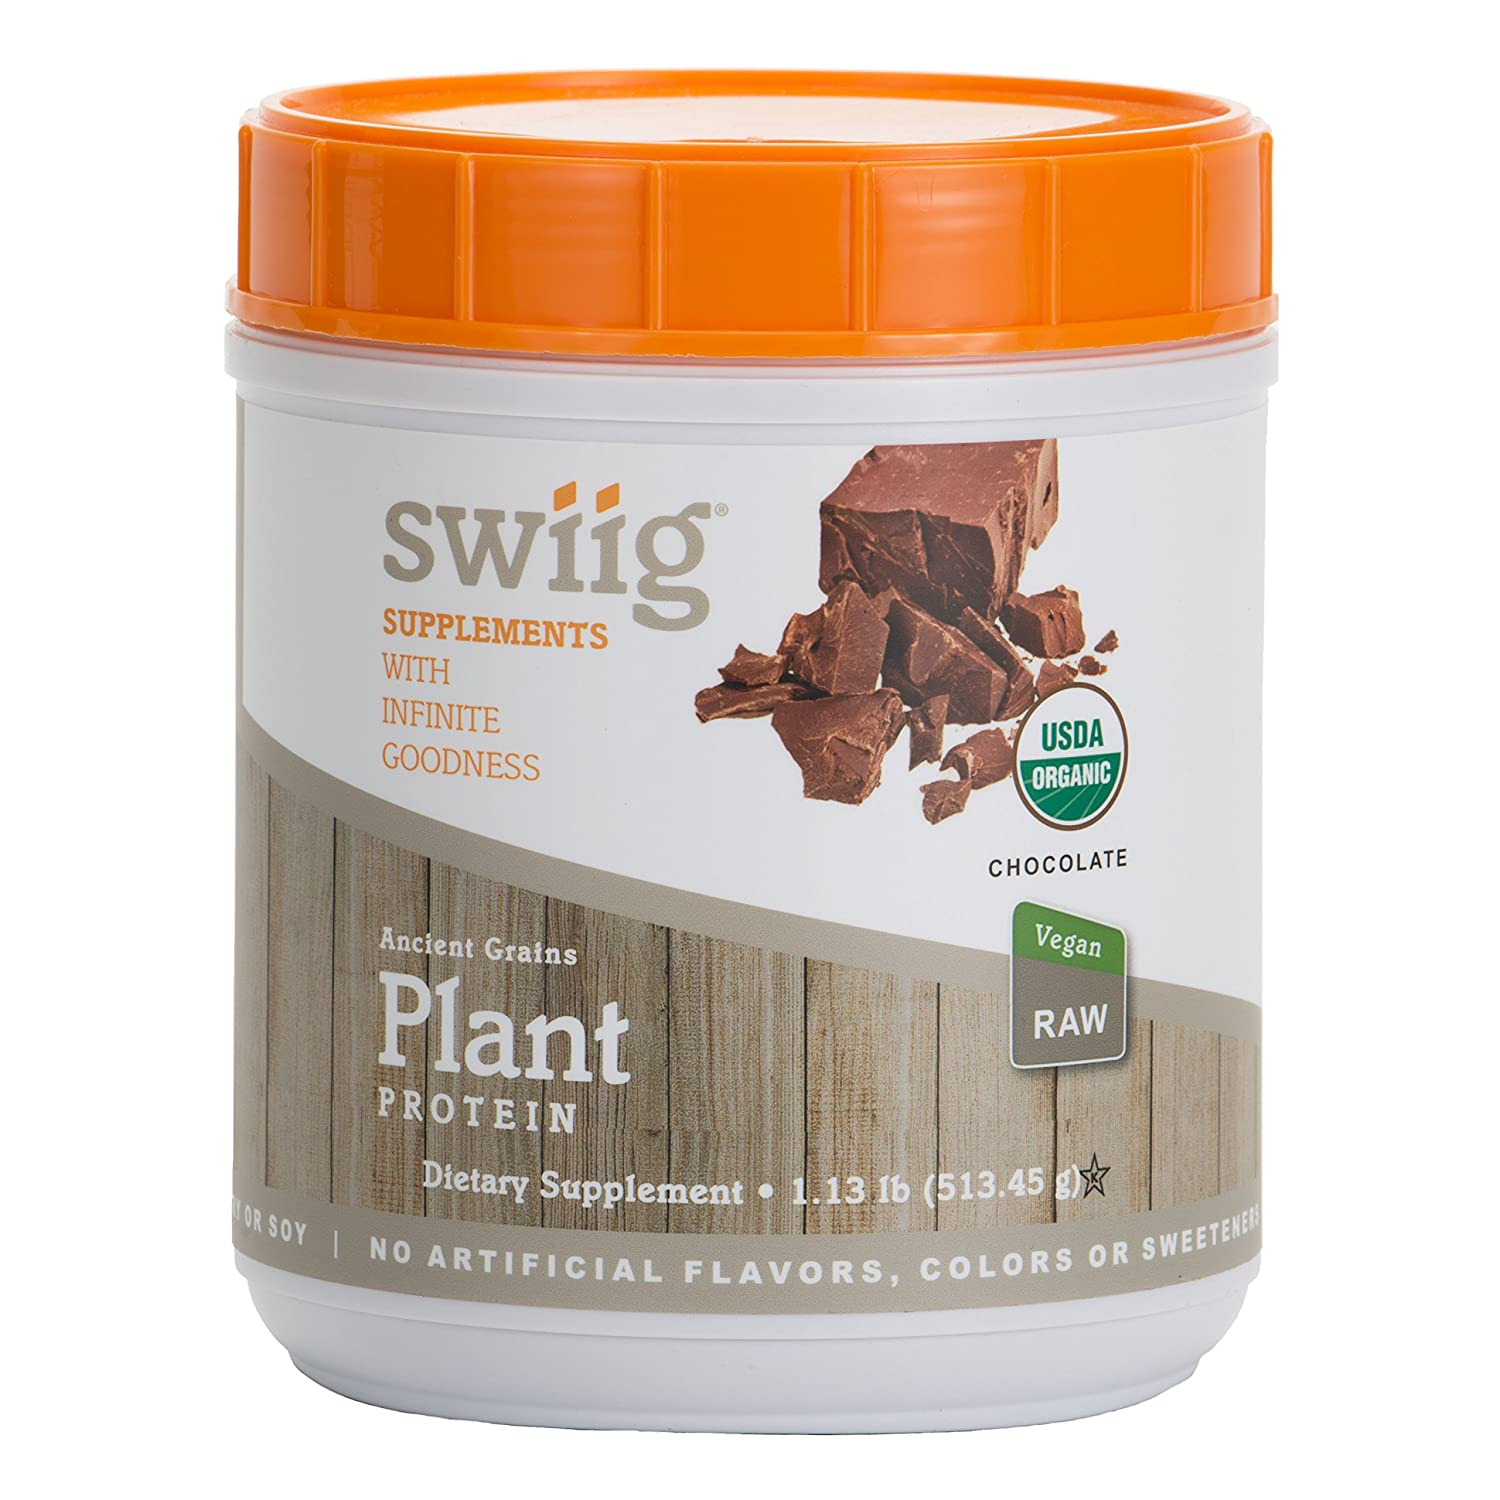 swiig Organic Ancient Grains Plant Protein Chocolate 1.24lb